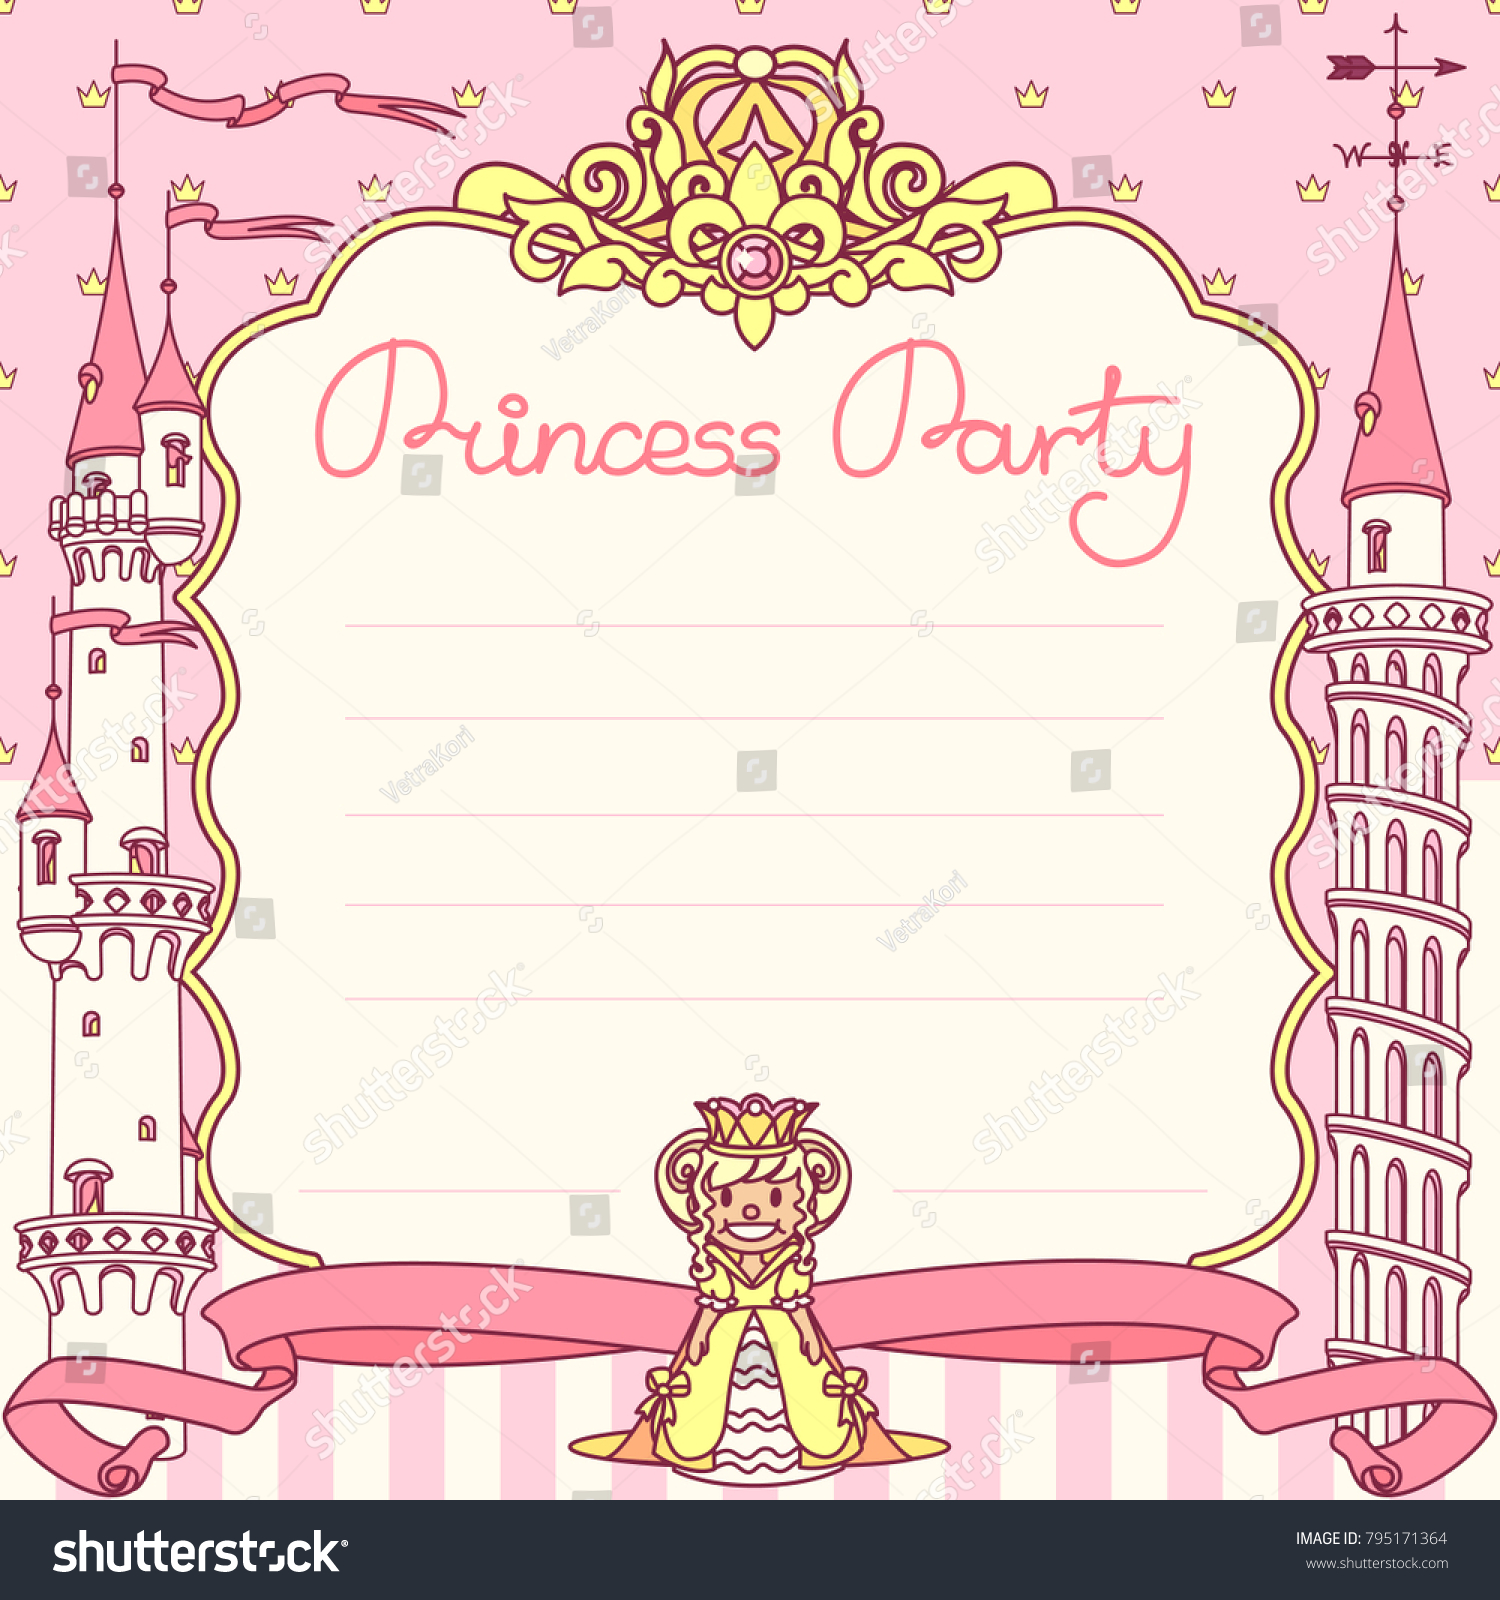 Vector Princess Party Invitation Template Festive Stock Photo (Photo ...